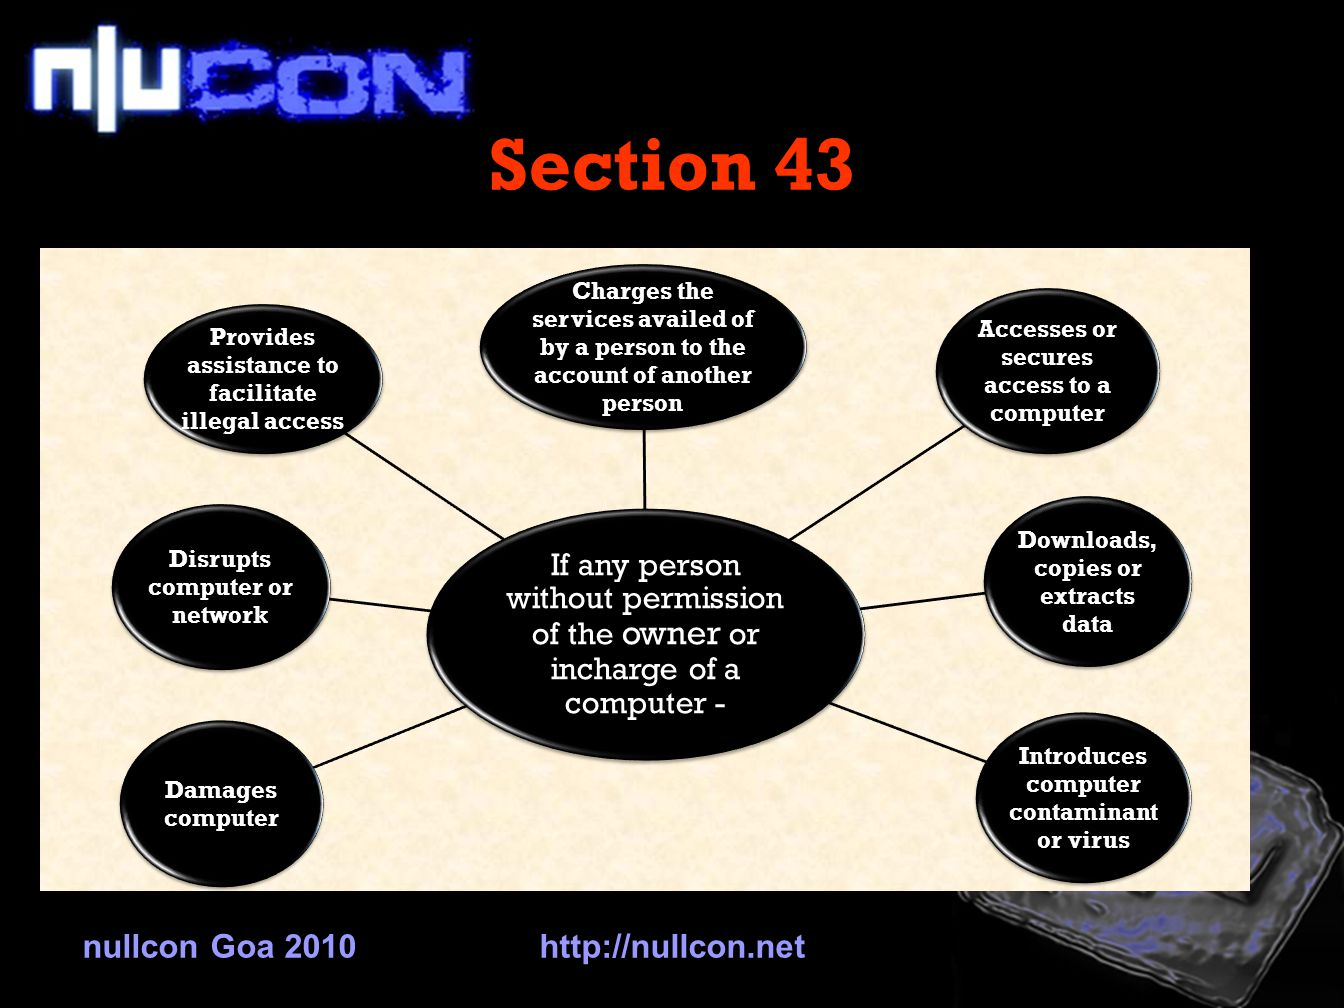 Section 43 nullcon Goa 2010http://nullcon.net If any person without permission of the owner or incharge of a computer - Accesses or secures access to a computer Downloads, copies or extracts data Introduces computer contaminan t or virus Damages computer Disrupts computer or network Provides assistance to facilitate illegal access Charges the services availed of by a person to the account of another person